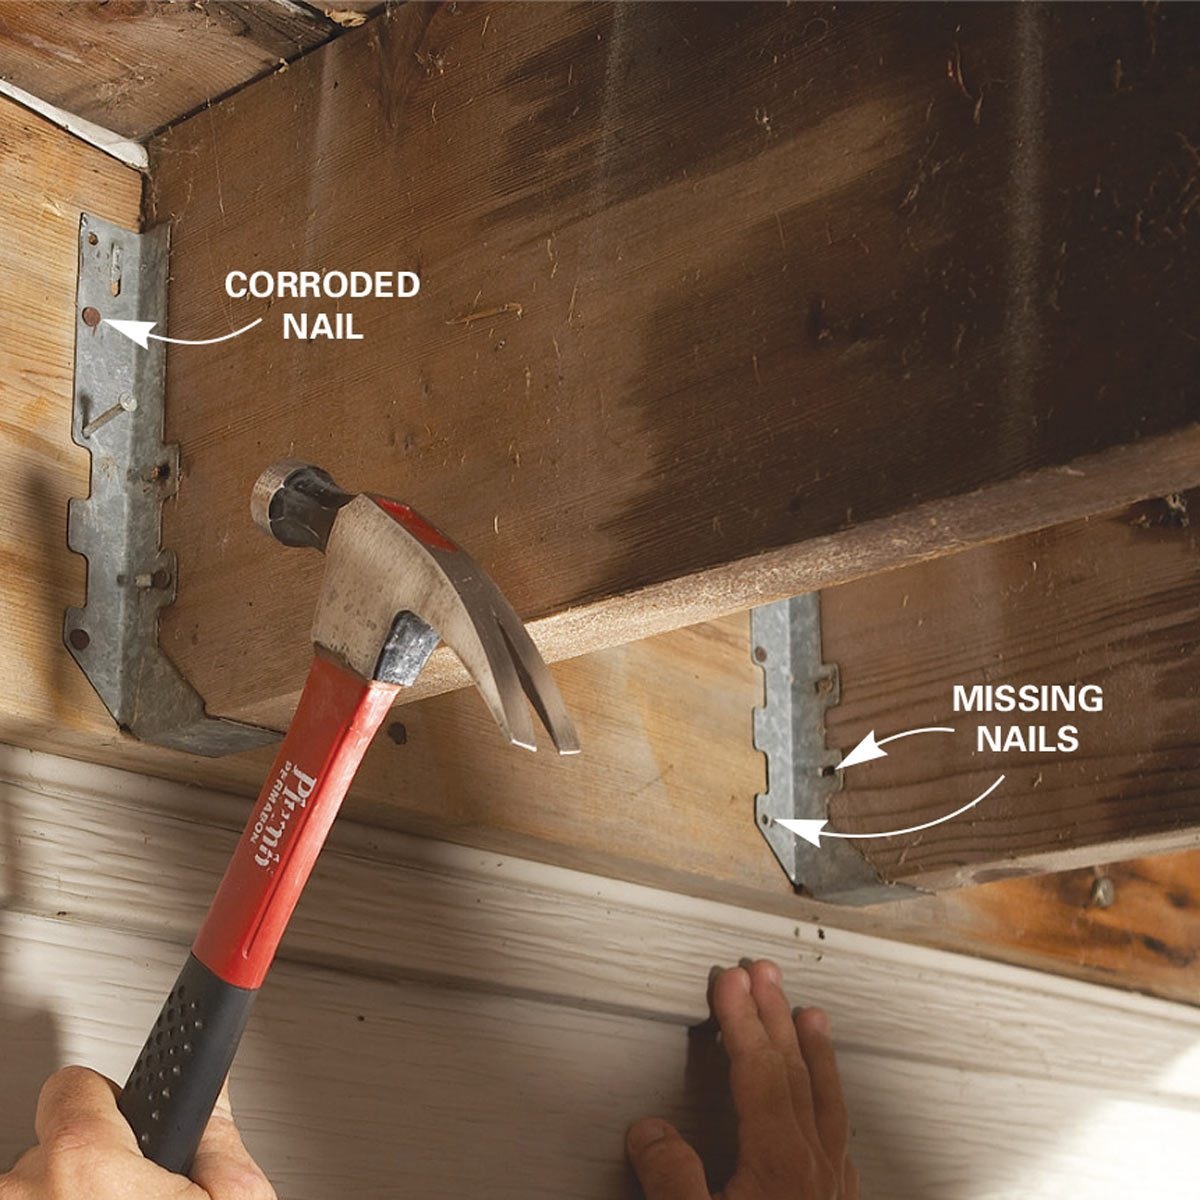 Problem 2: Missing nails in joist hangers